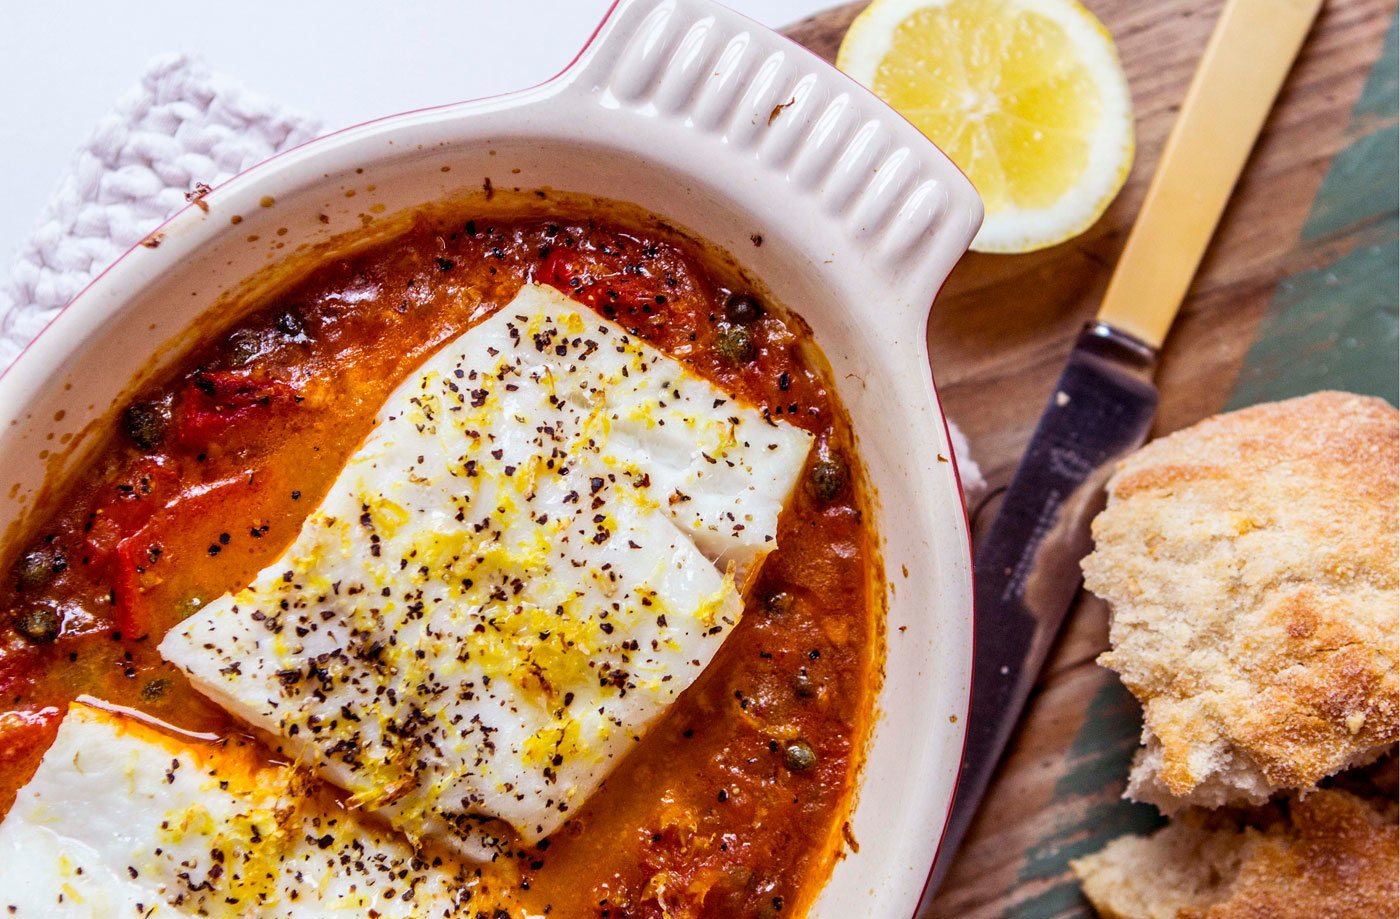 Baked cod with a rich tomato sauce tesco real food for Baked cod fish recipes